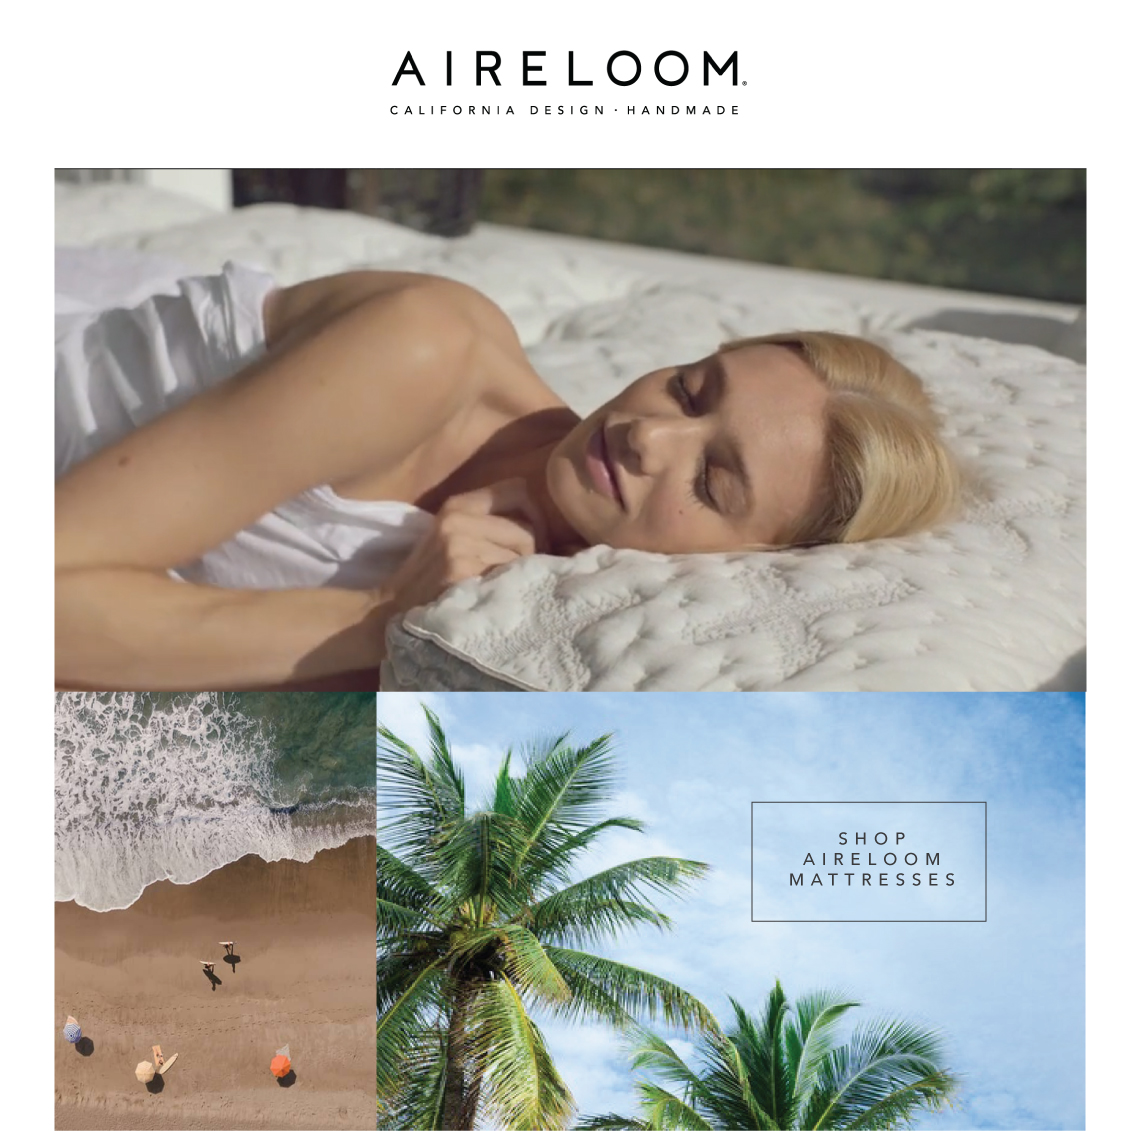 Aireloom Mattresses